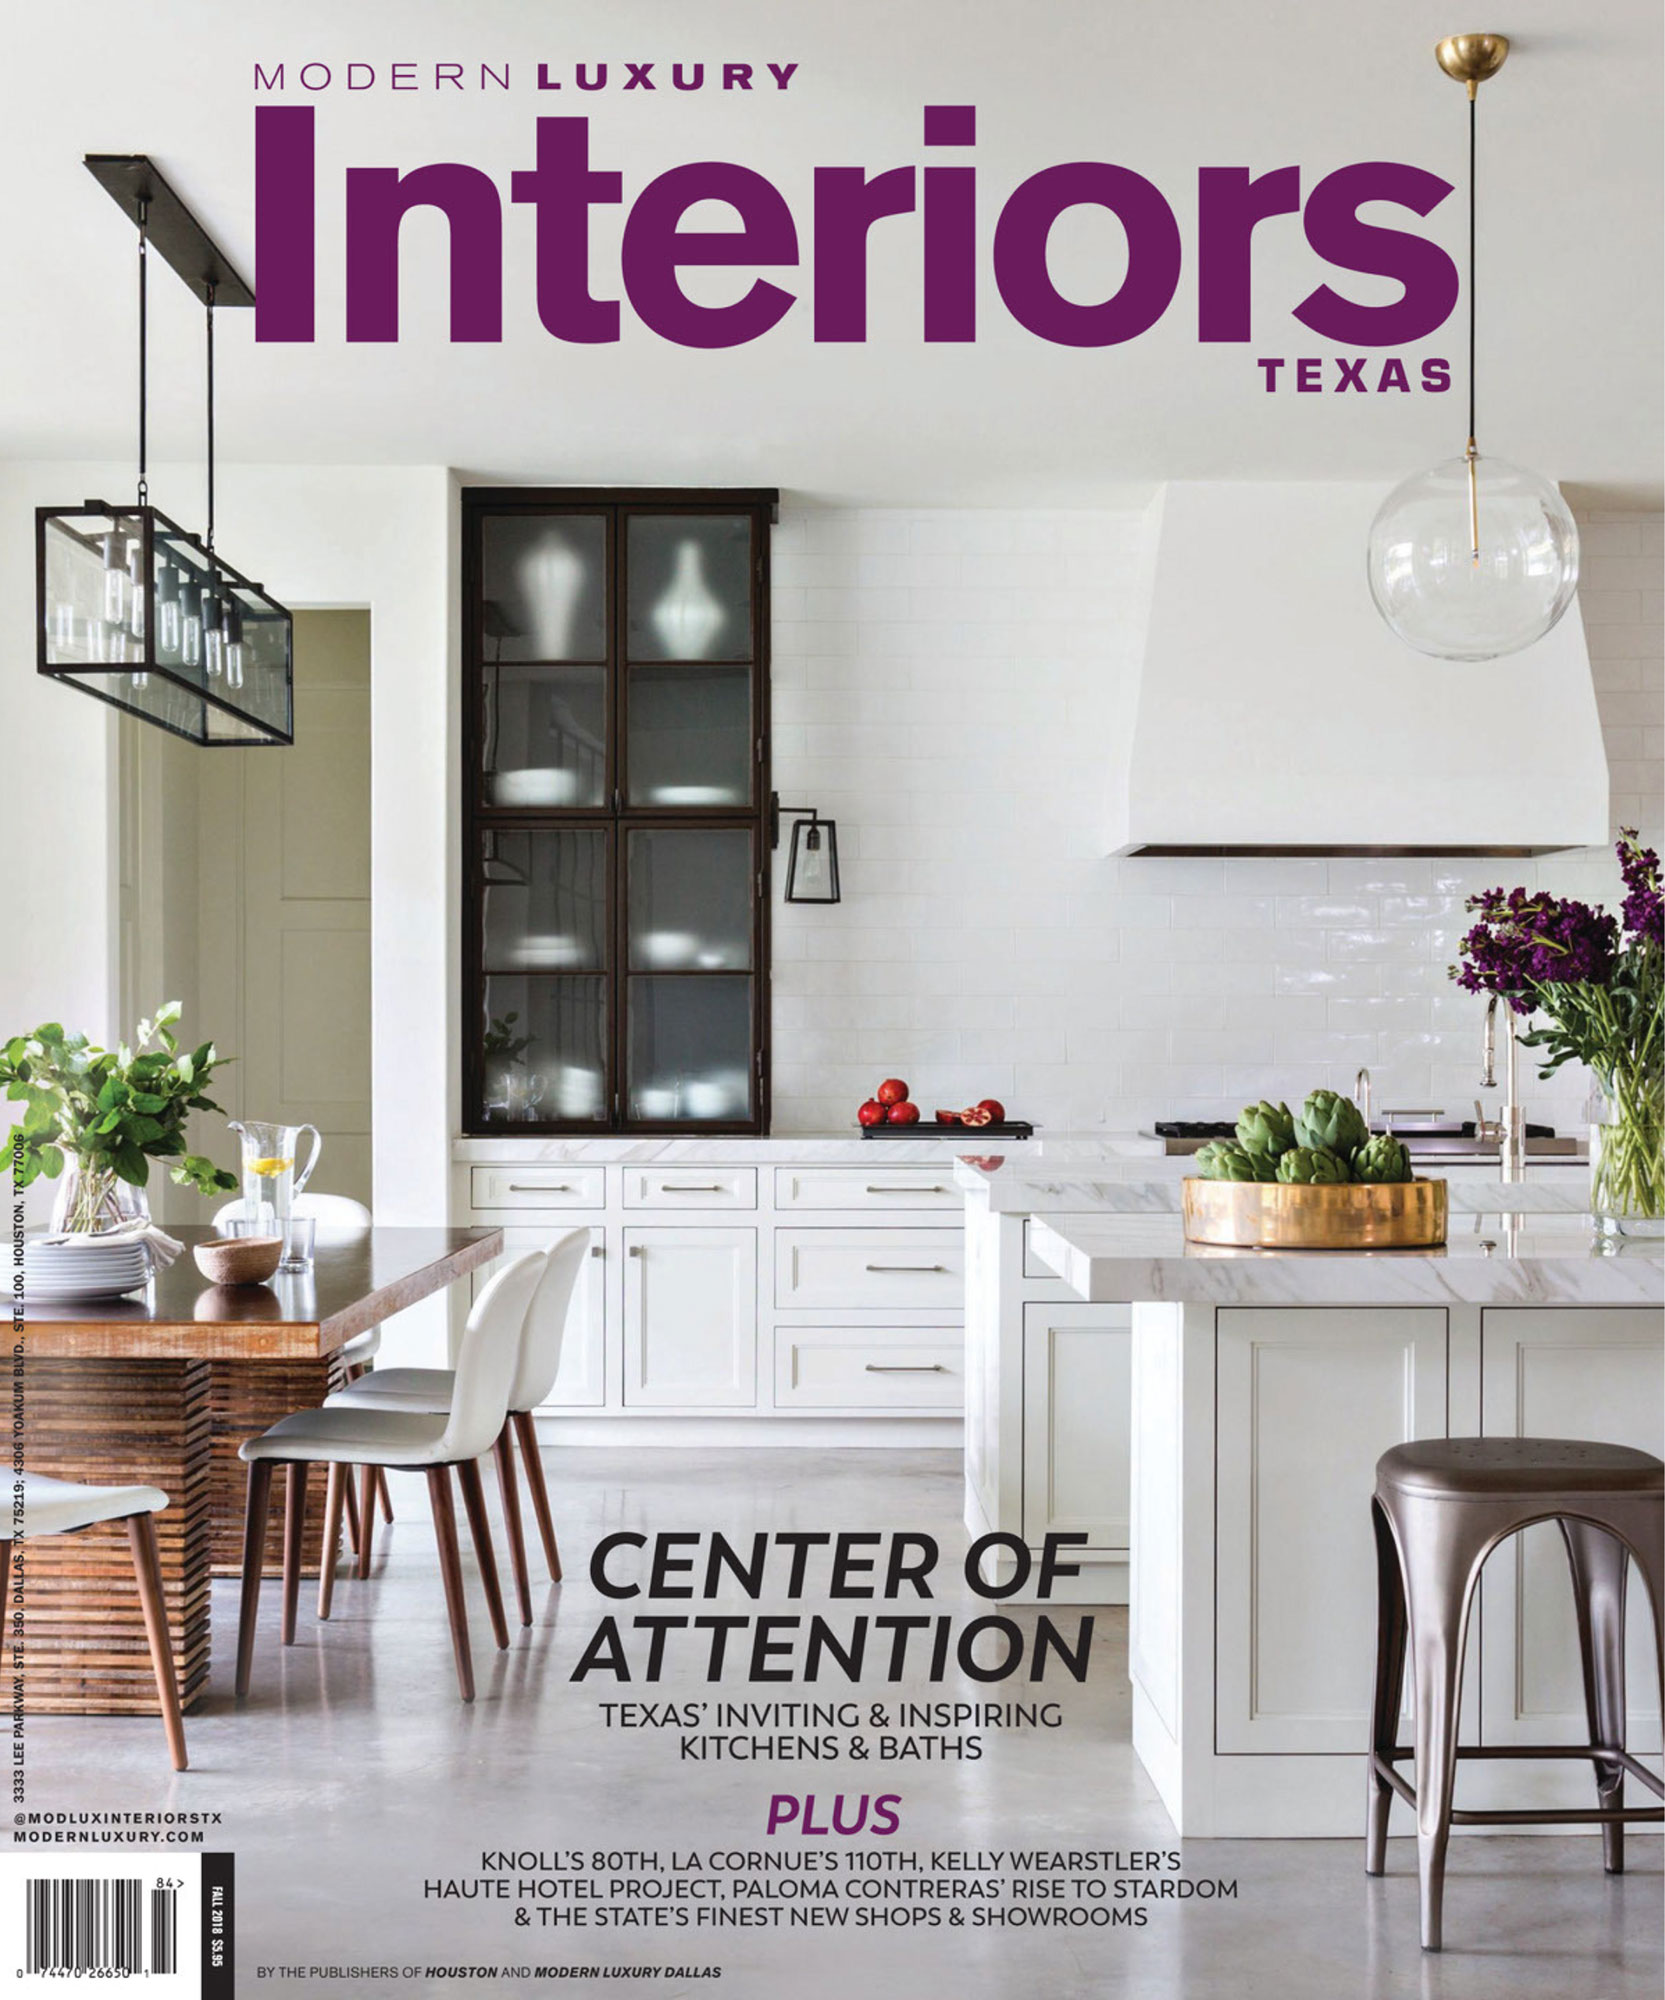 Modern Luxury Interiors Texas - Magazine Photography - Julie Soefer Photography